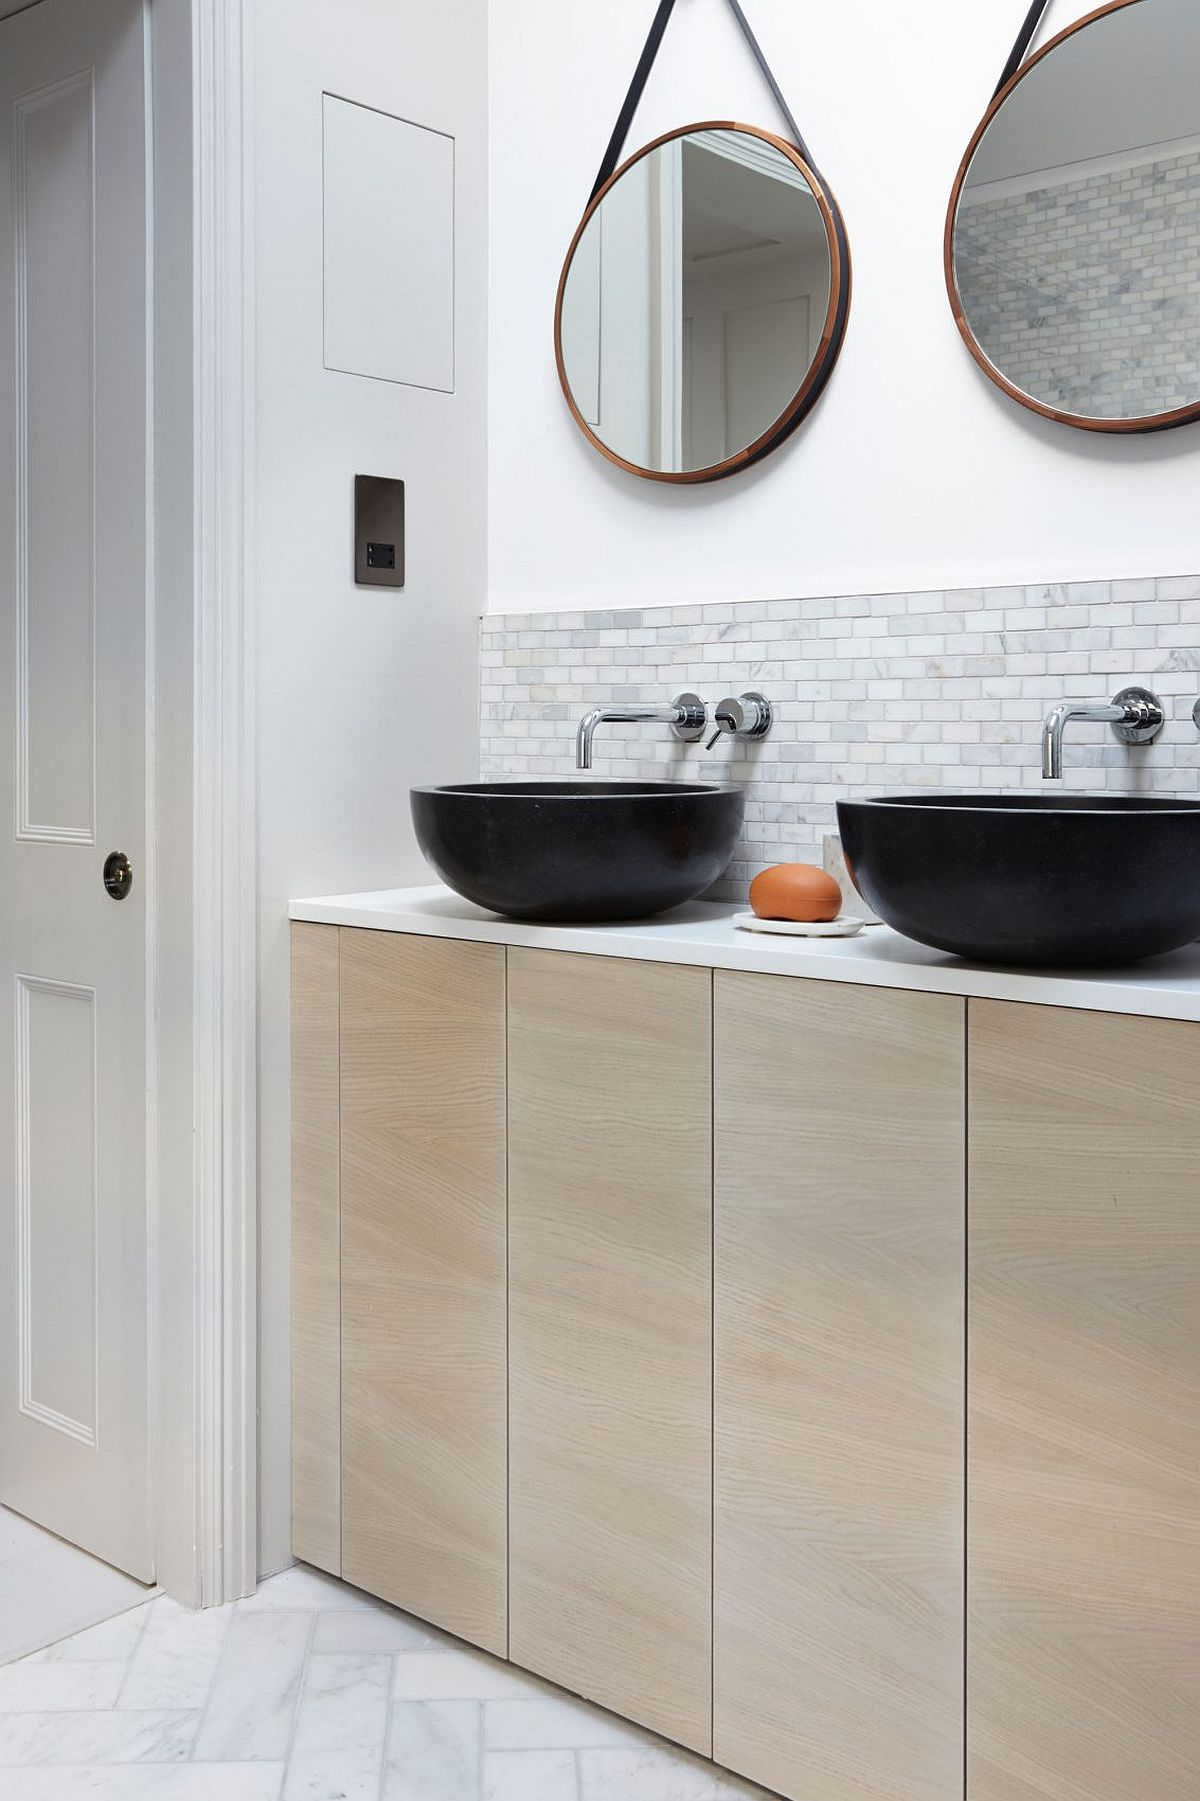 Round mirrors like the ones in this bathroom are a hot trend that also add geo style